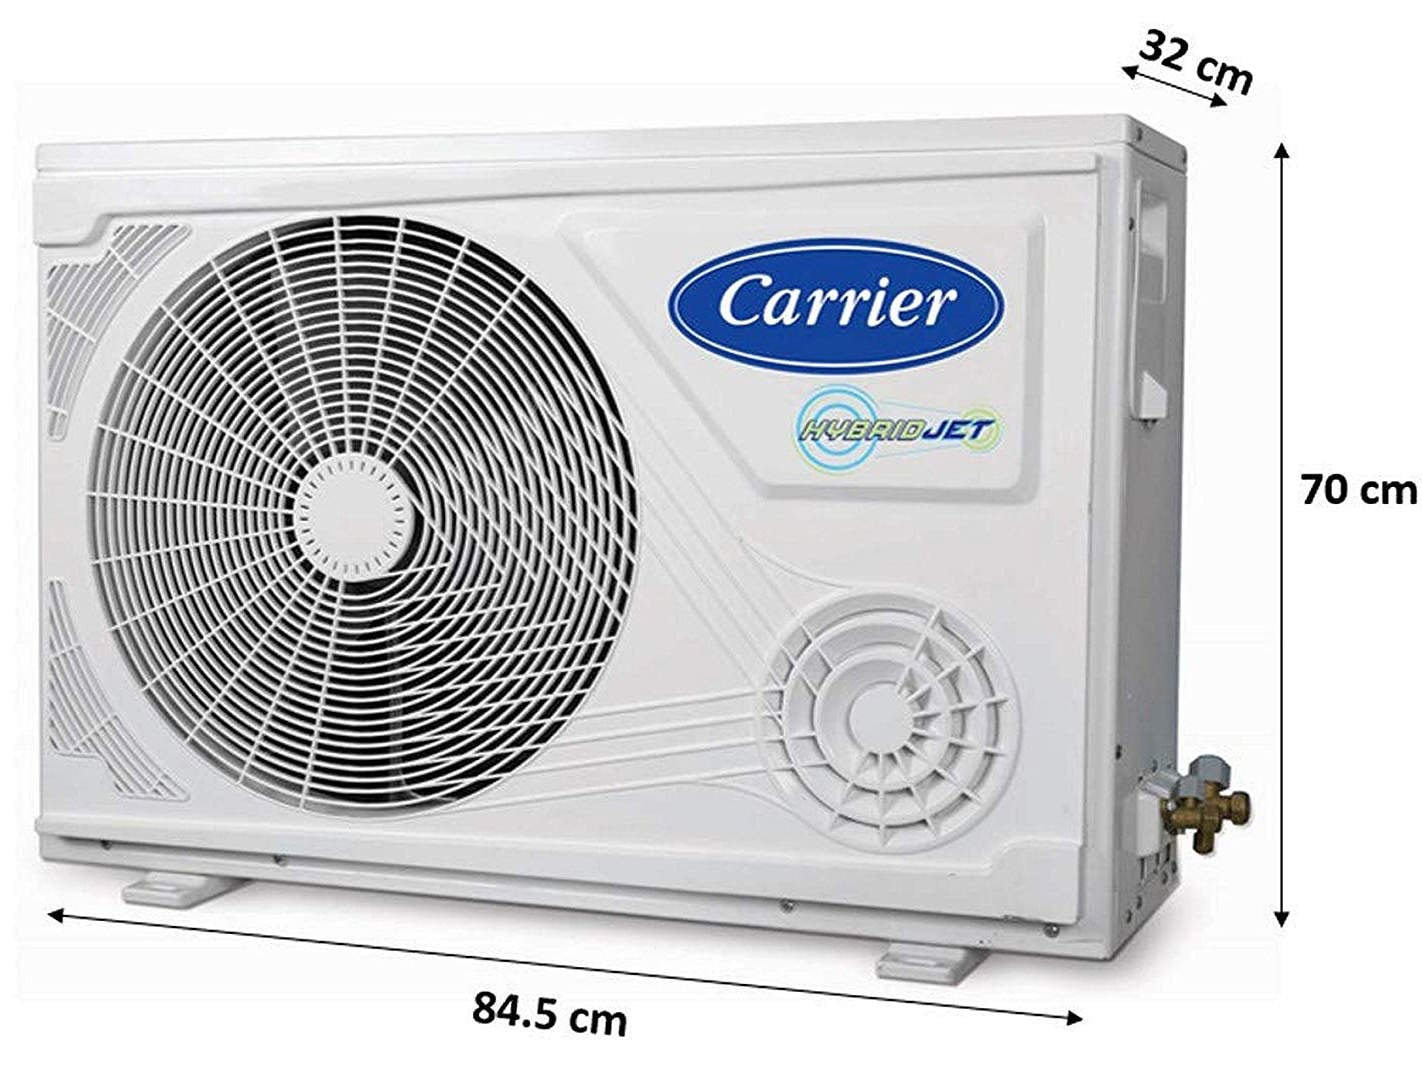 Carrier 2 Ton 3 Star Inverter Split AC (Copper, CAI24EK3R49F0+CI243R4DH90, White)